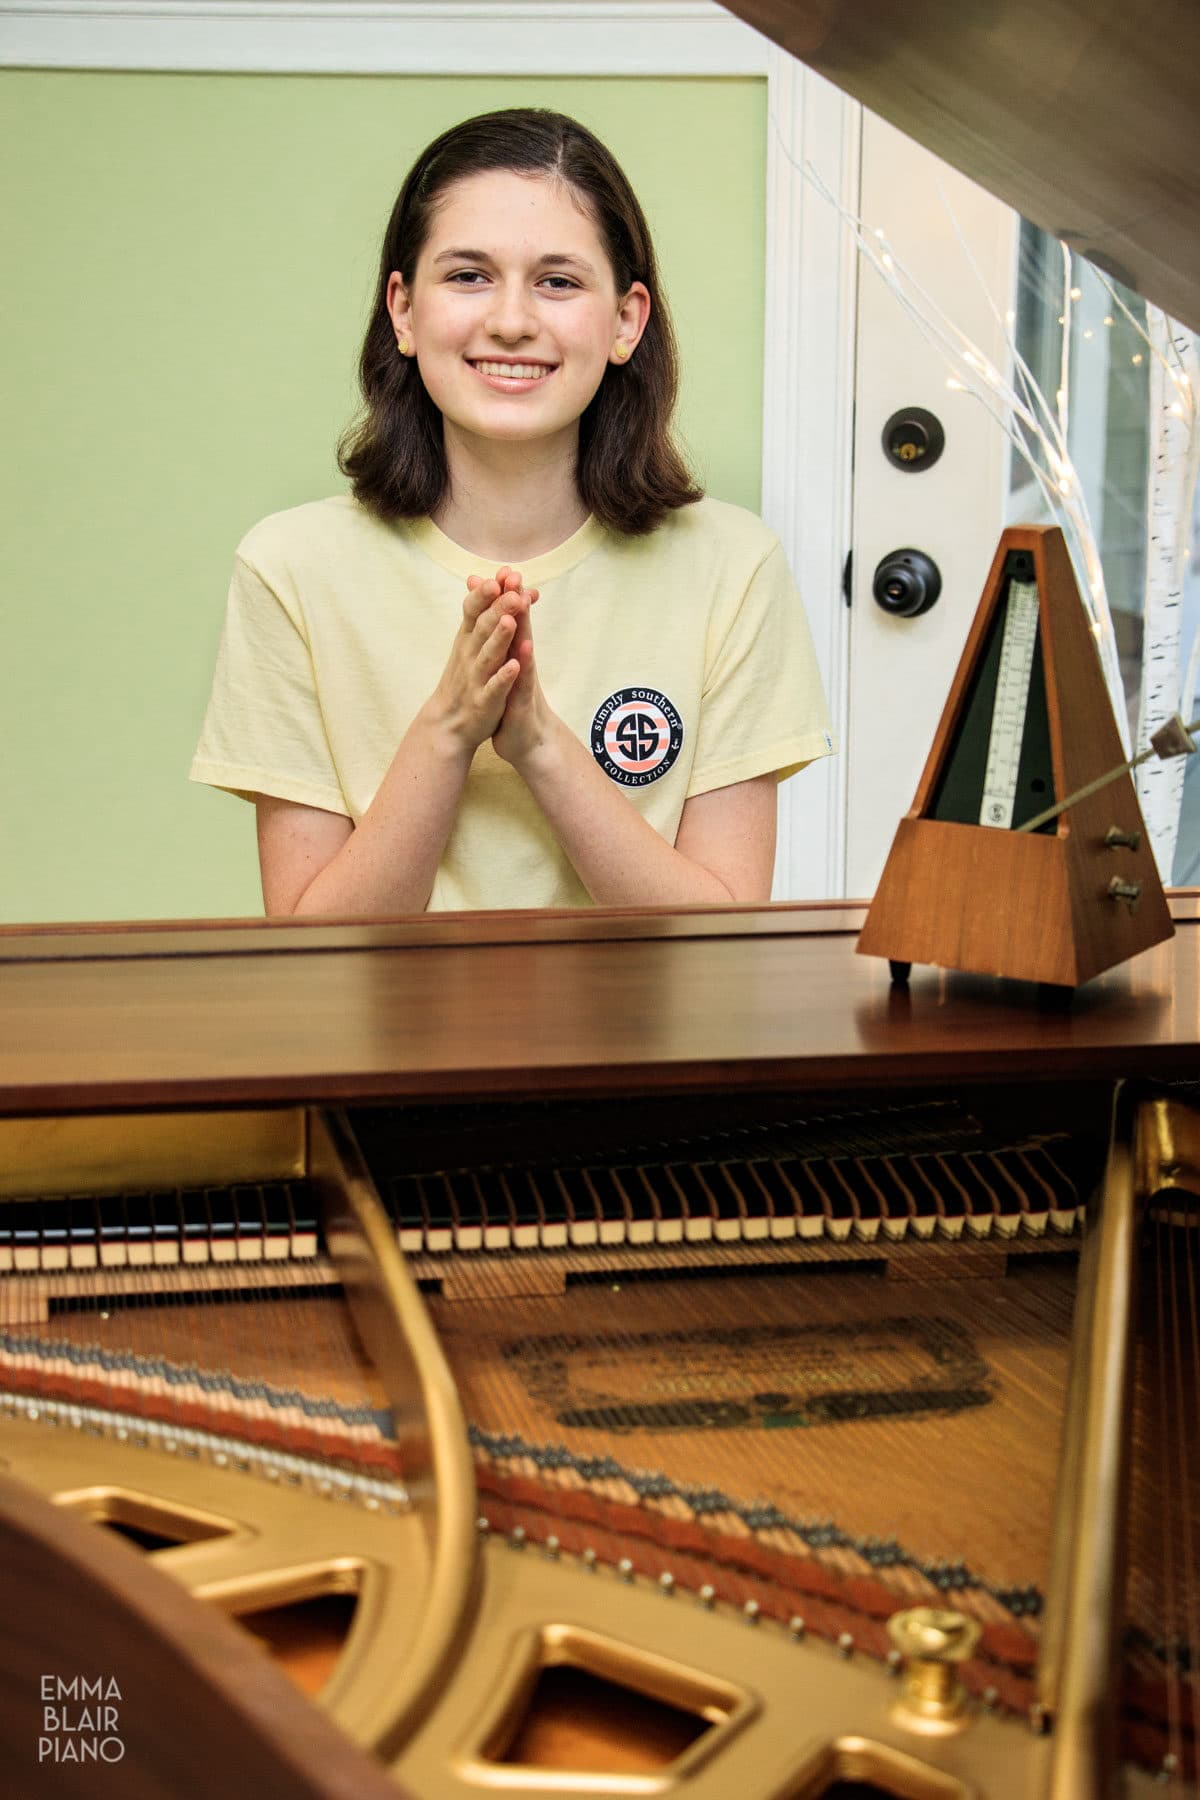 teenage girl clapping a rhythm with a metronome at the piano